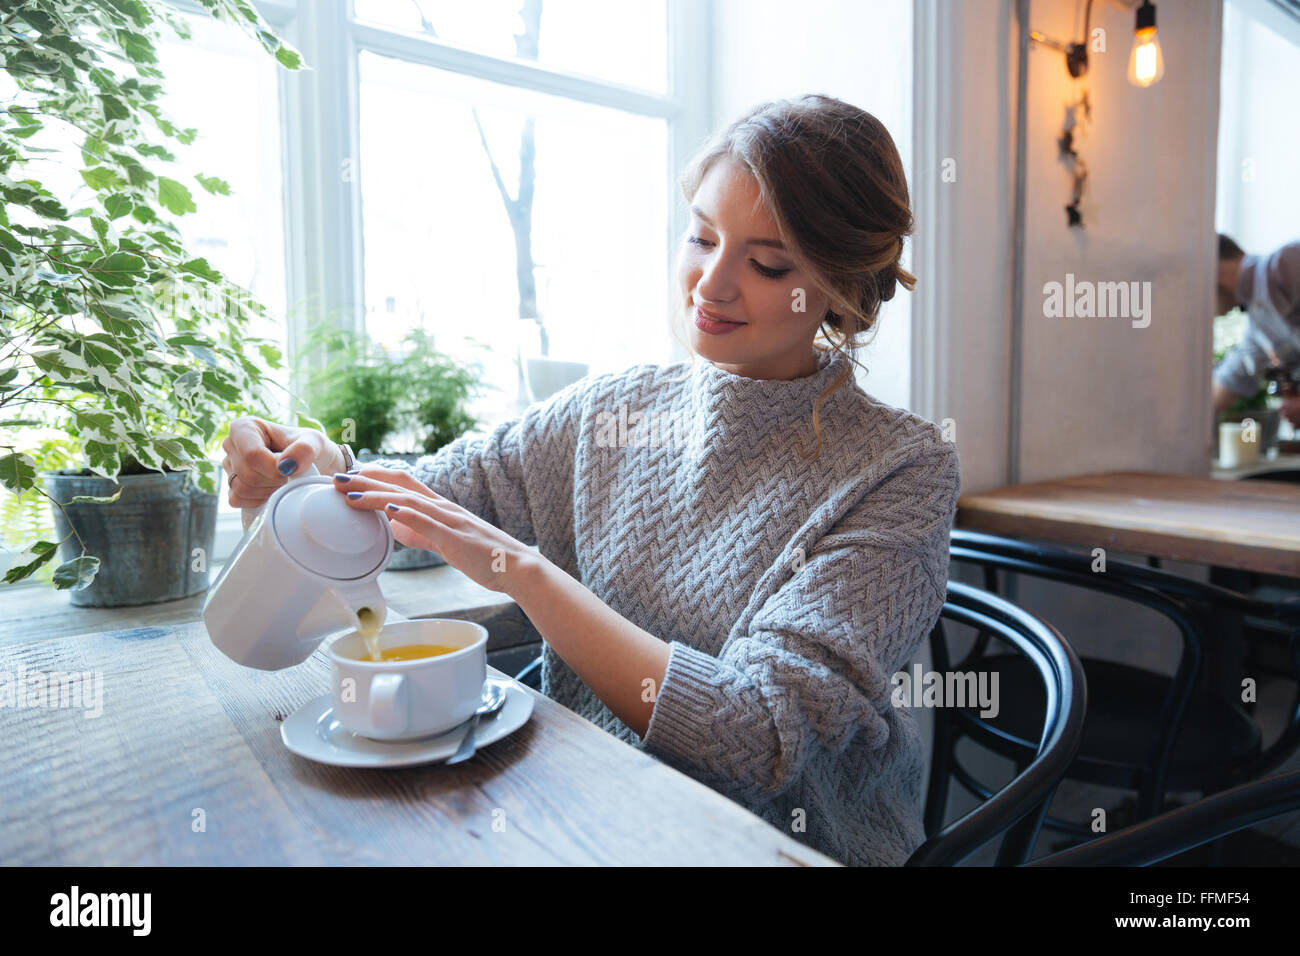 Happy woman drinking tea in cafe - Stock Image